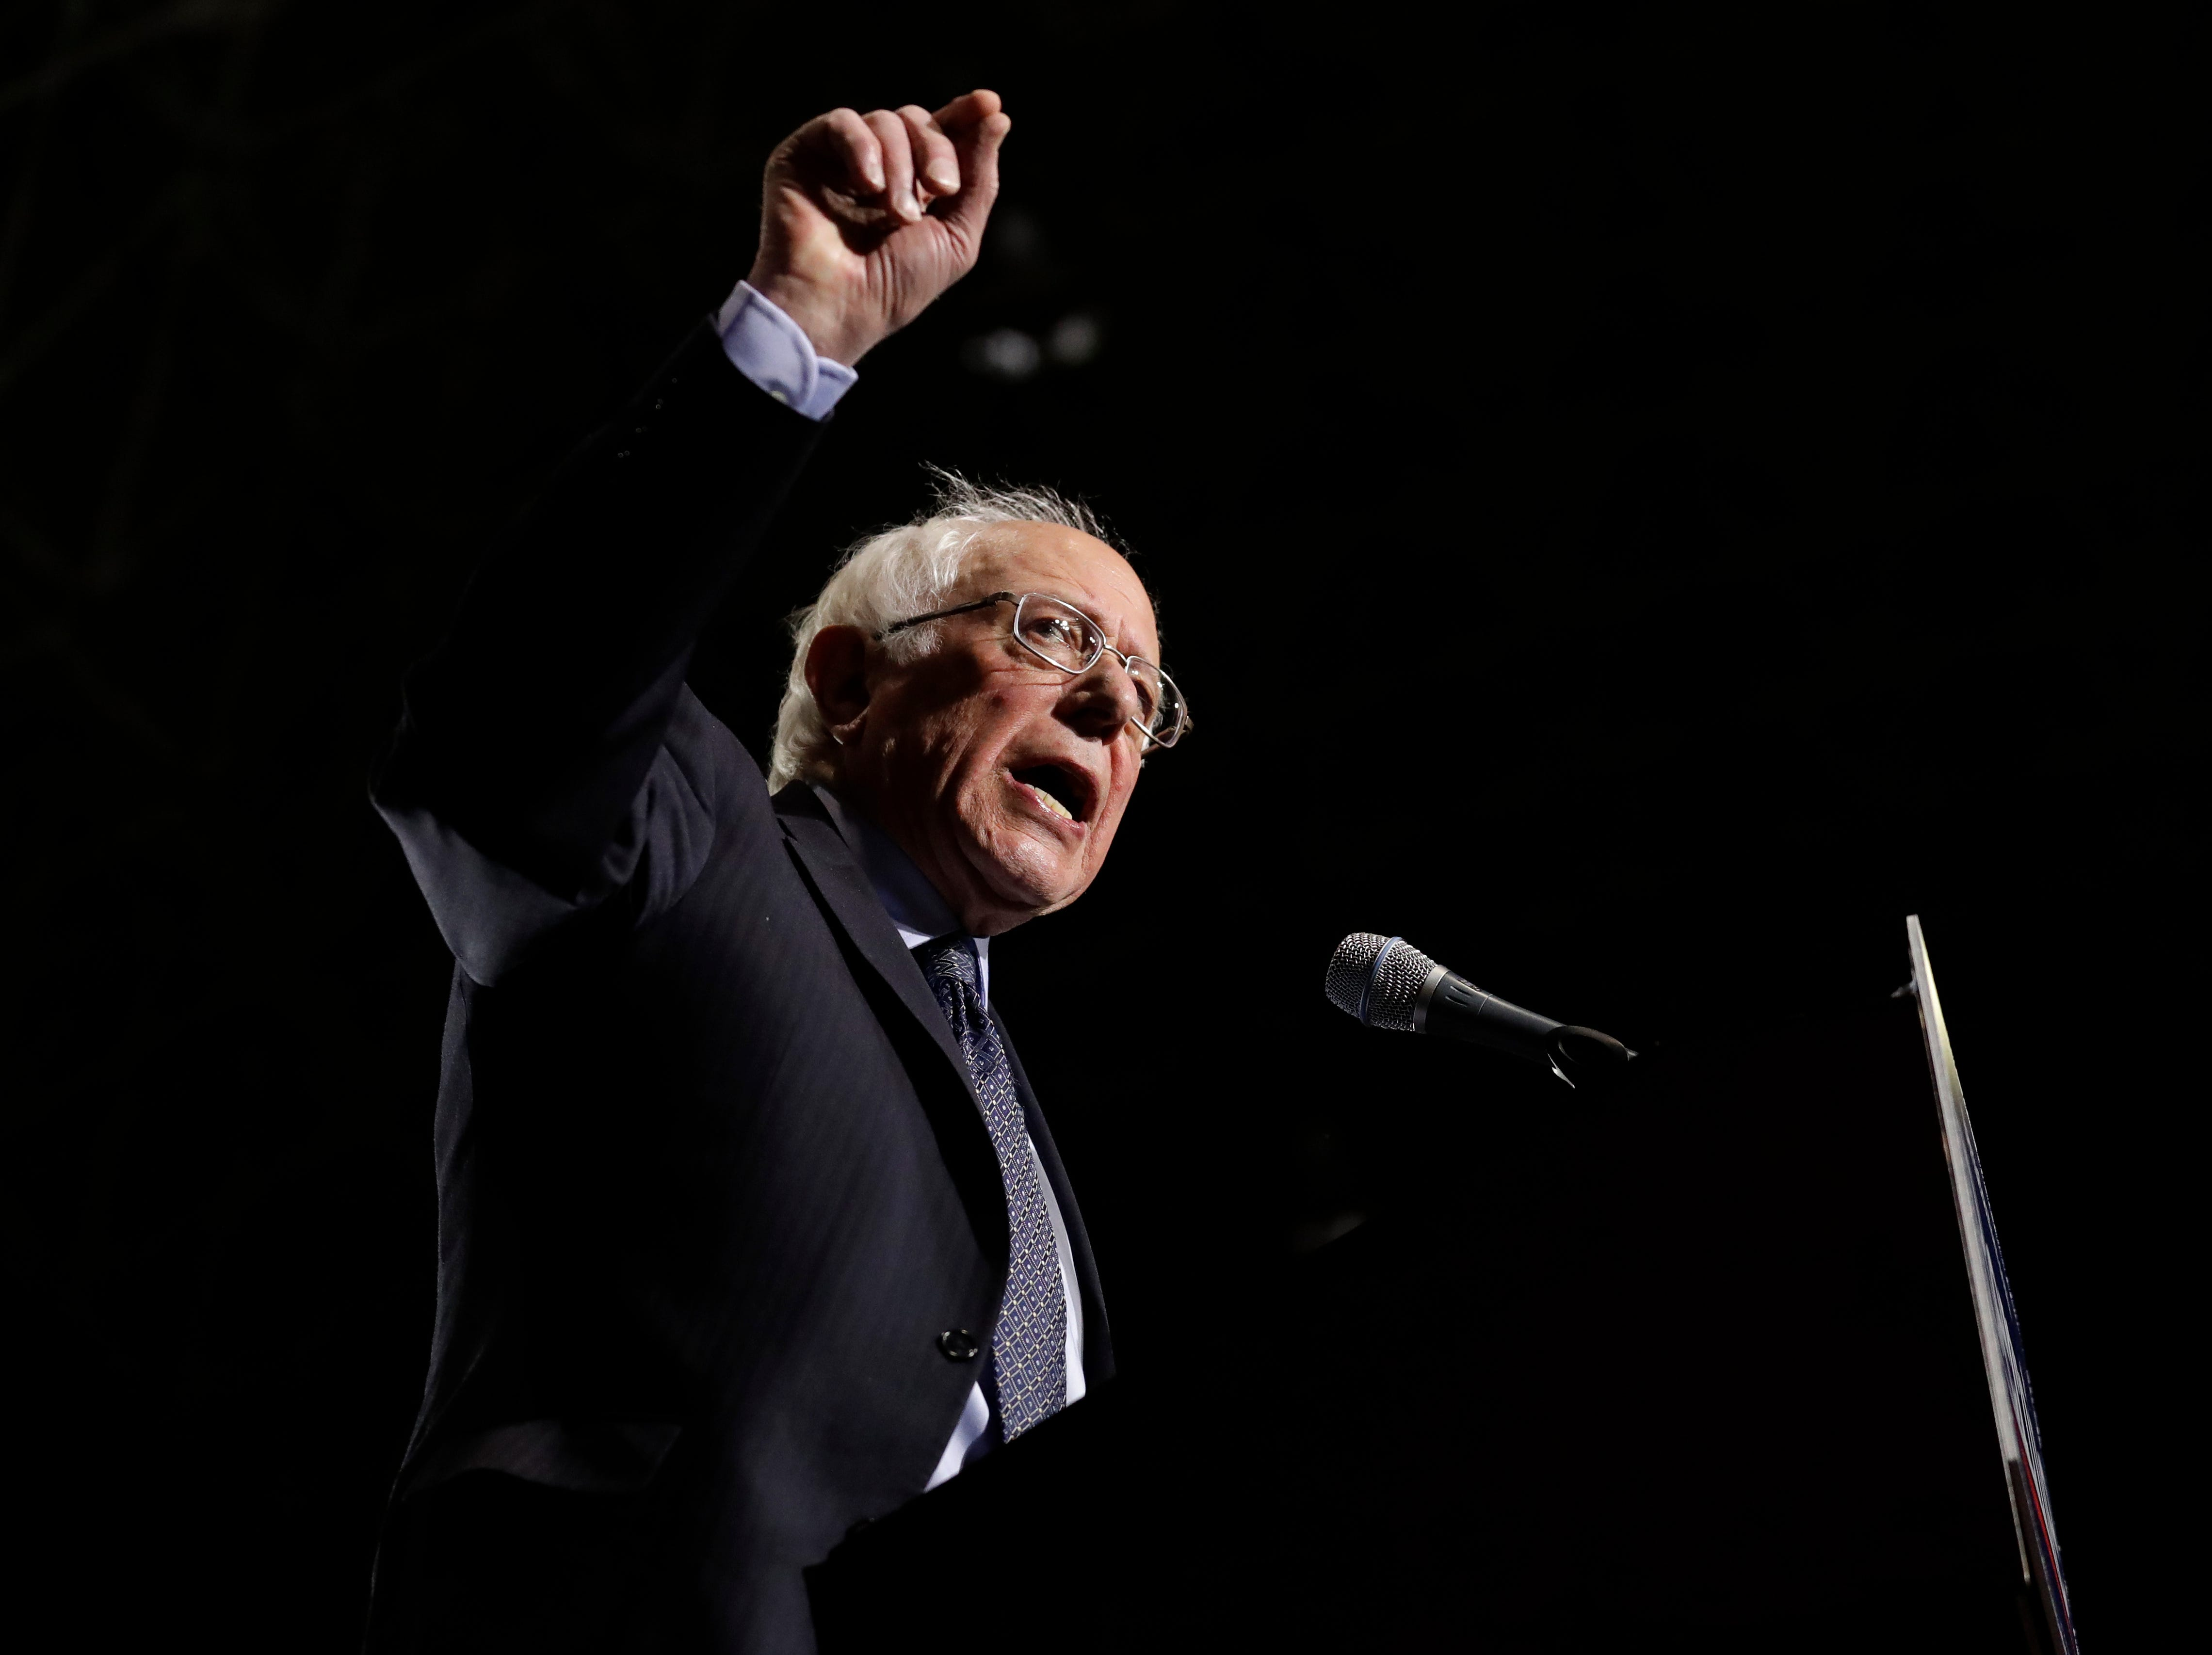 Sen. Bernie Sanders, I-Vt., speaks as he kicks off his 2020 presidential campaign at Navy Pier in Chicago, Sunday, March 3, 2019. Over the next several weeks, Sanders will travel to Iowa, New Hampshire, South Carolina, Nevada, and California. He will then return to Burlington, Vt., for the official launch of his campaign.